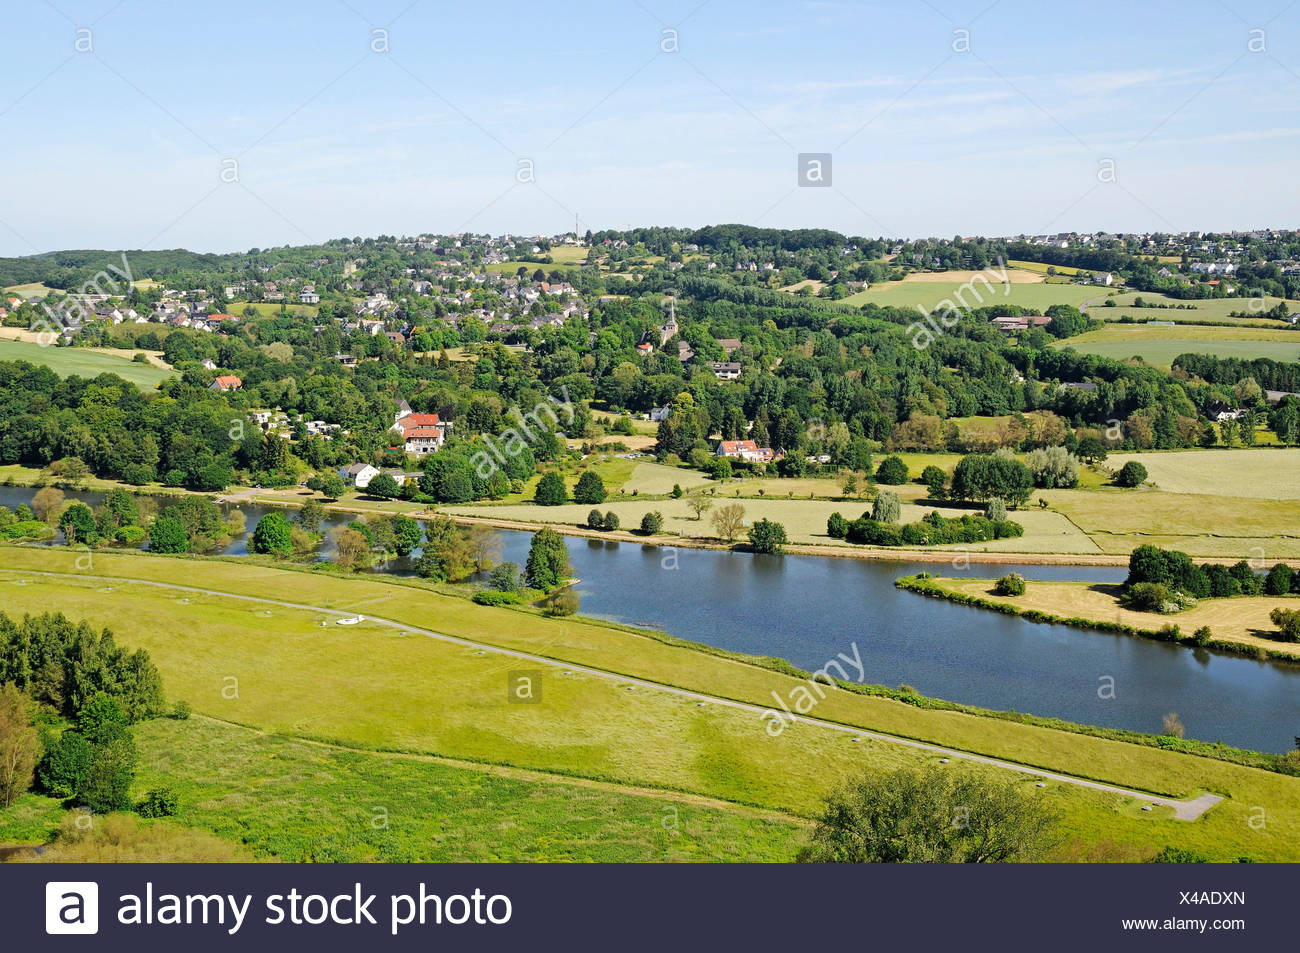 Bochum Stiepel, view from the castle to the Ruhr valley and the river Ruhr, Blankenstein, Hattingen, North Rhine-Westphalia, Ge - Stock Image